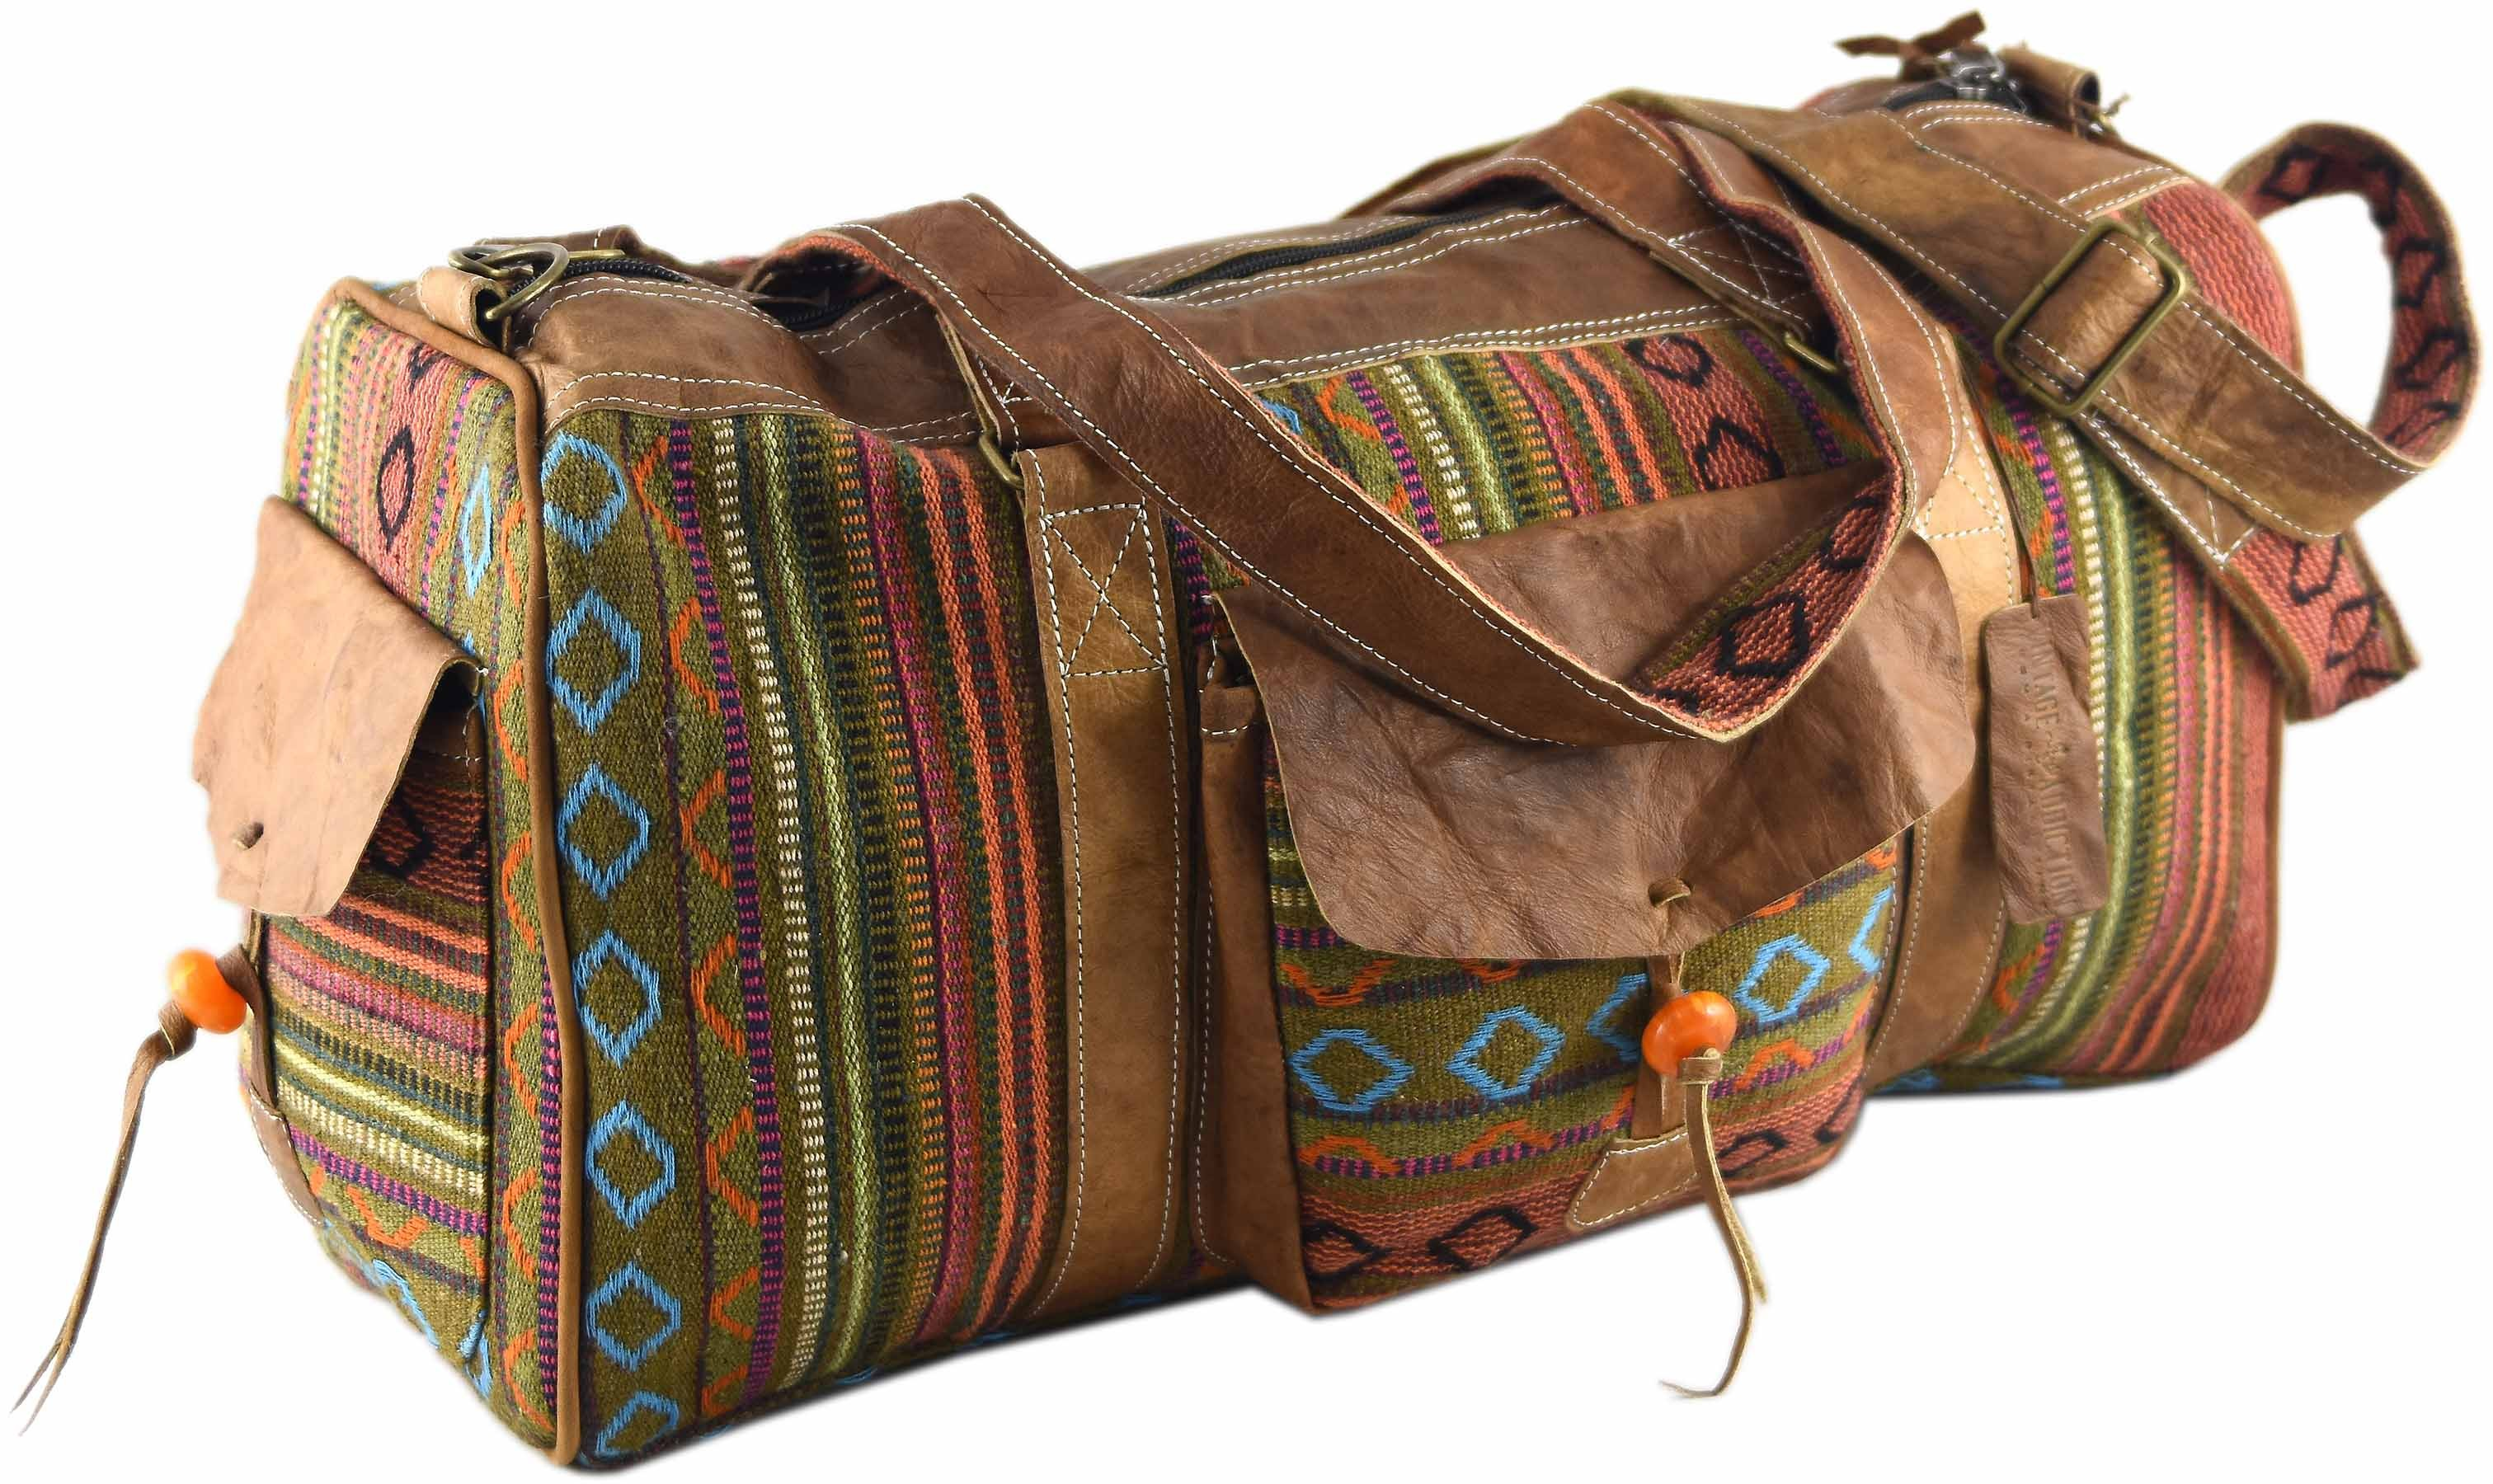 Wanderlust Terracotta Weekender Travel Bag Bags